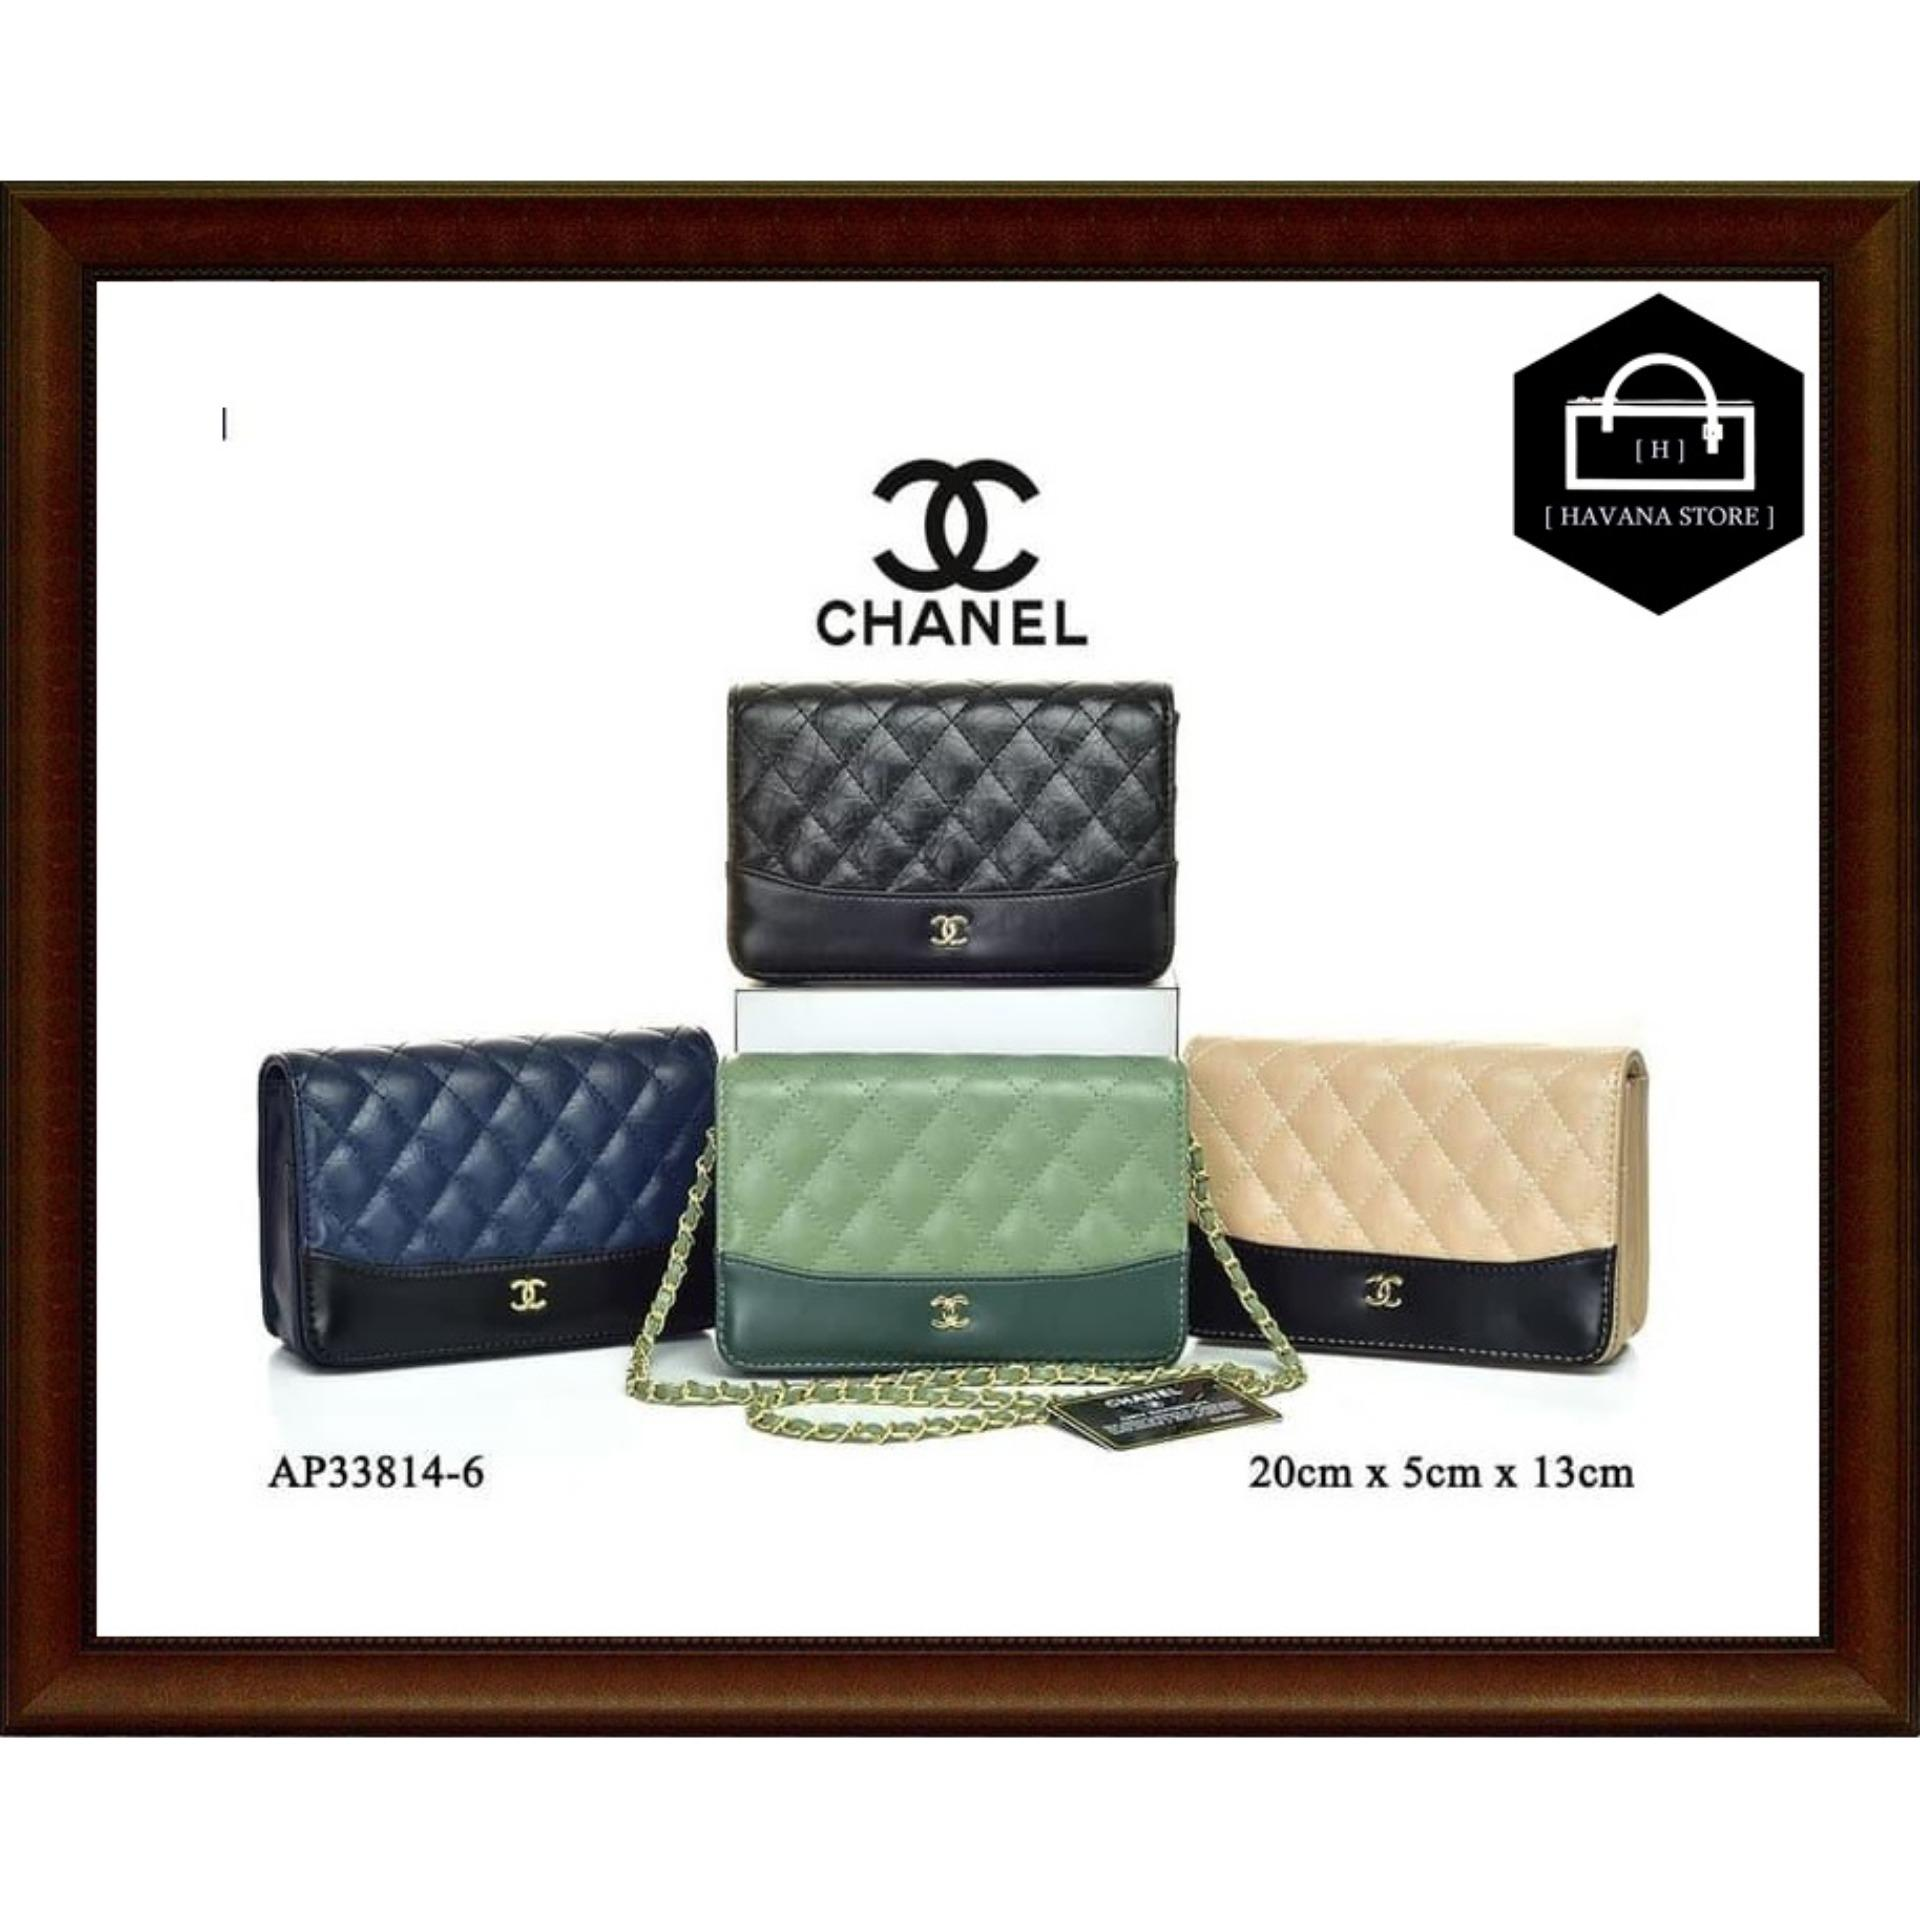 new Clutch Chanel WOC Gabrielle Flap Semi Premium AP33814-6   bag   branded    0ffc901ac4